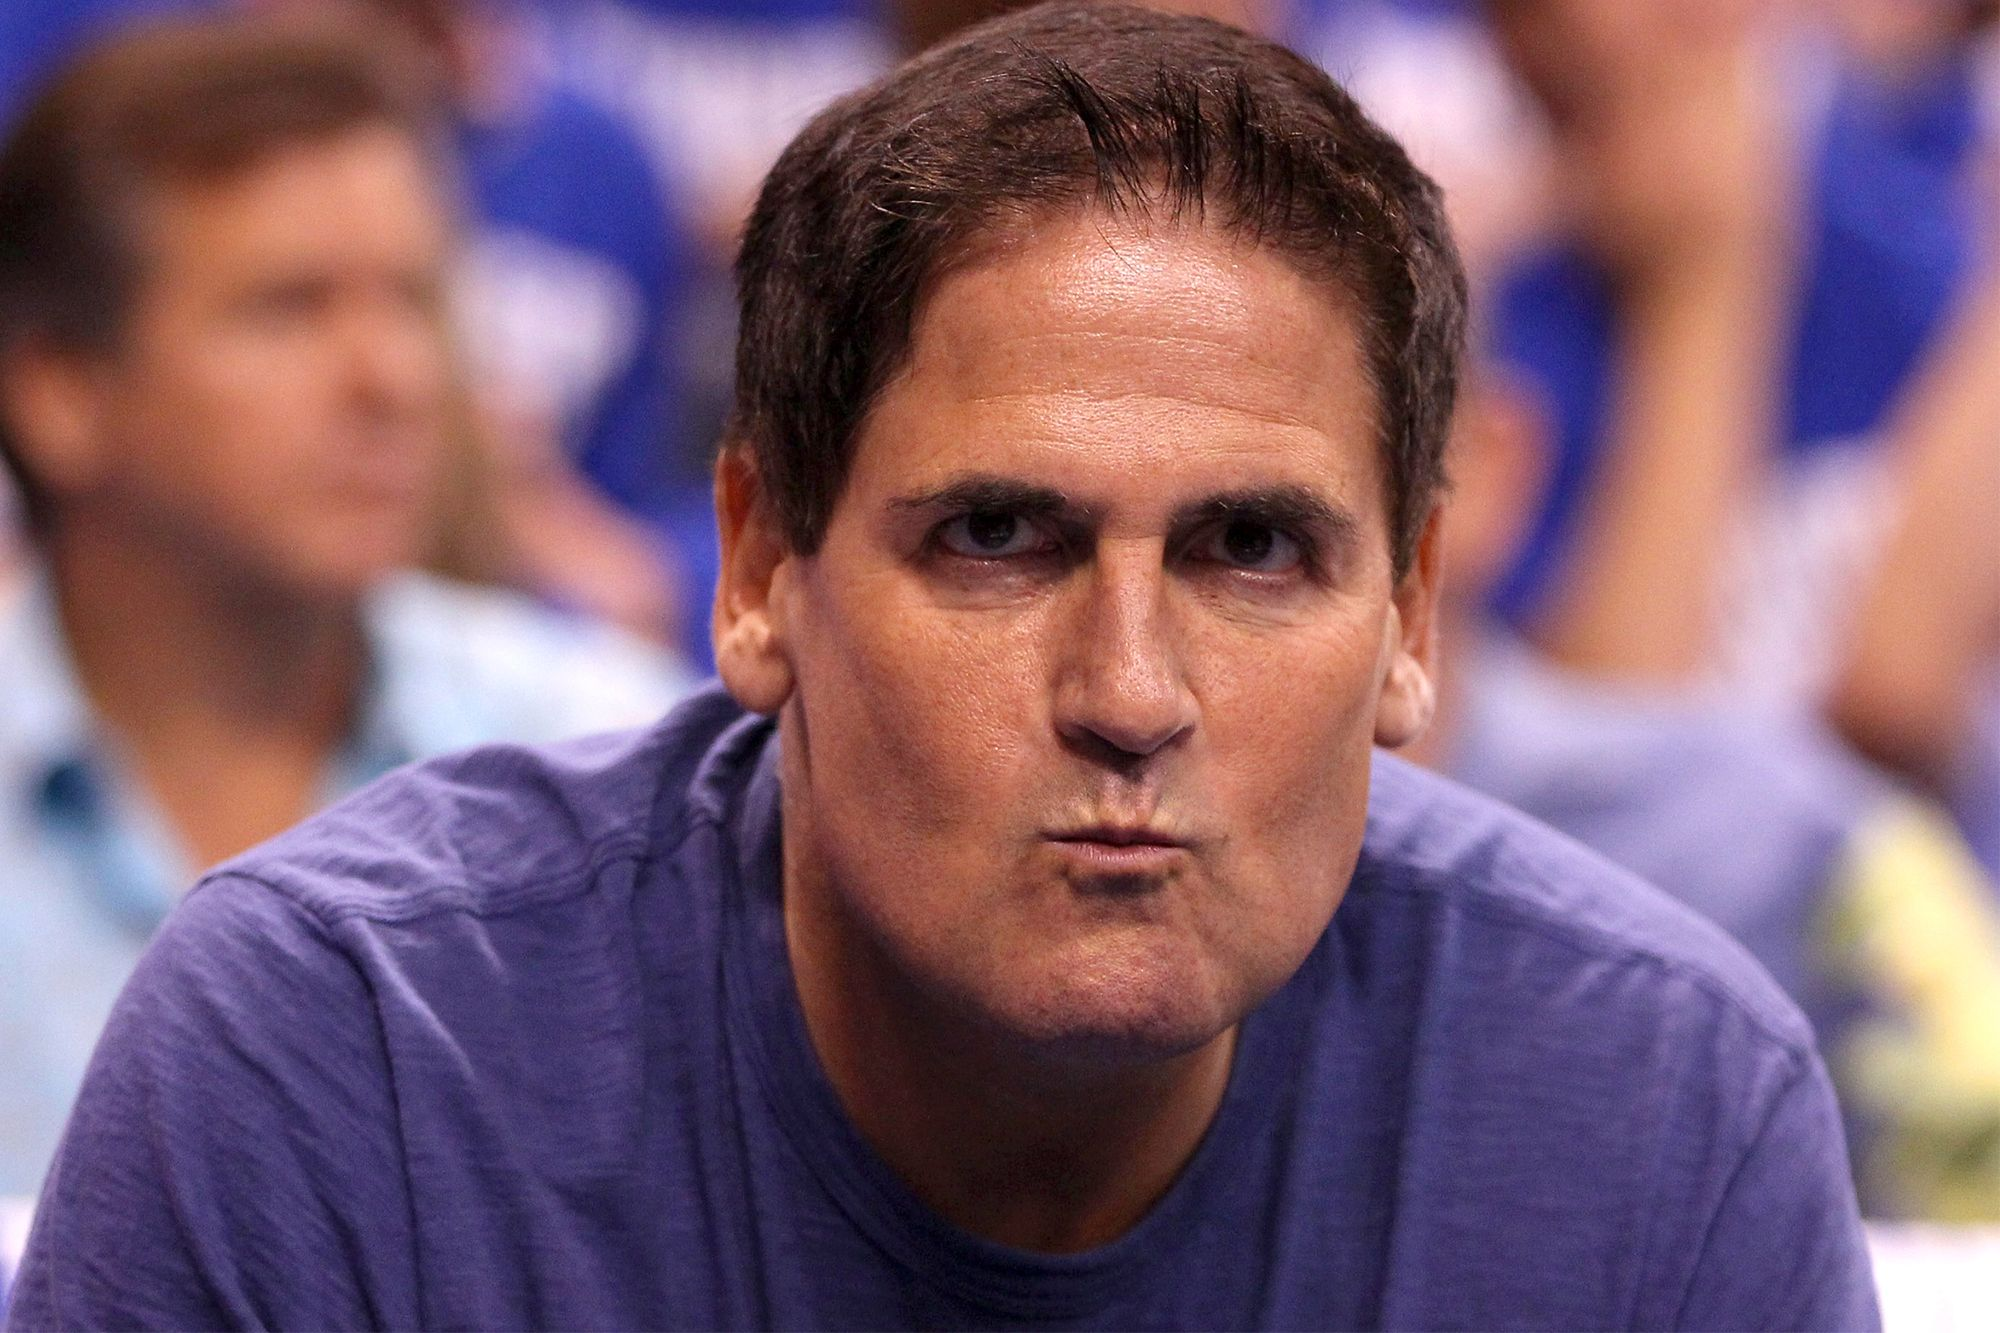 Mark Cuban made the most Mark Cuban investments as a billionaire